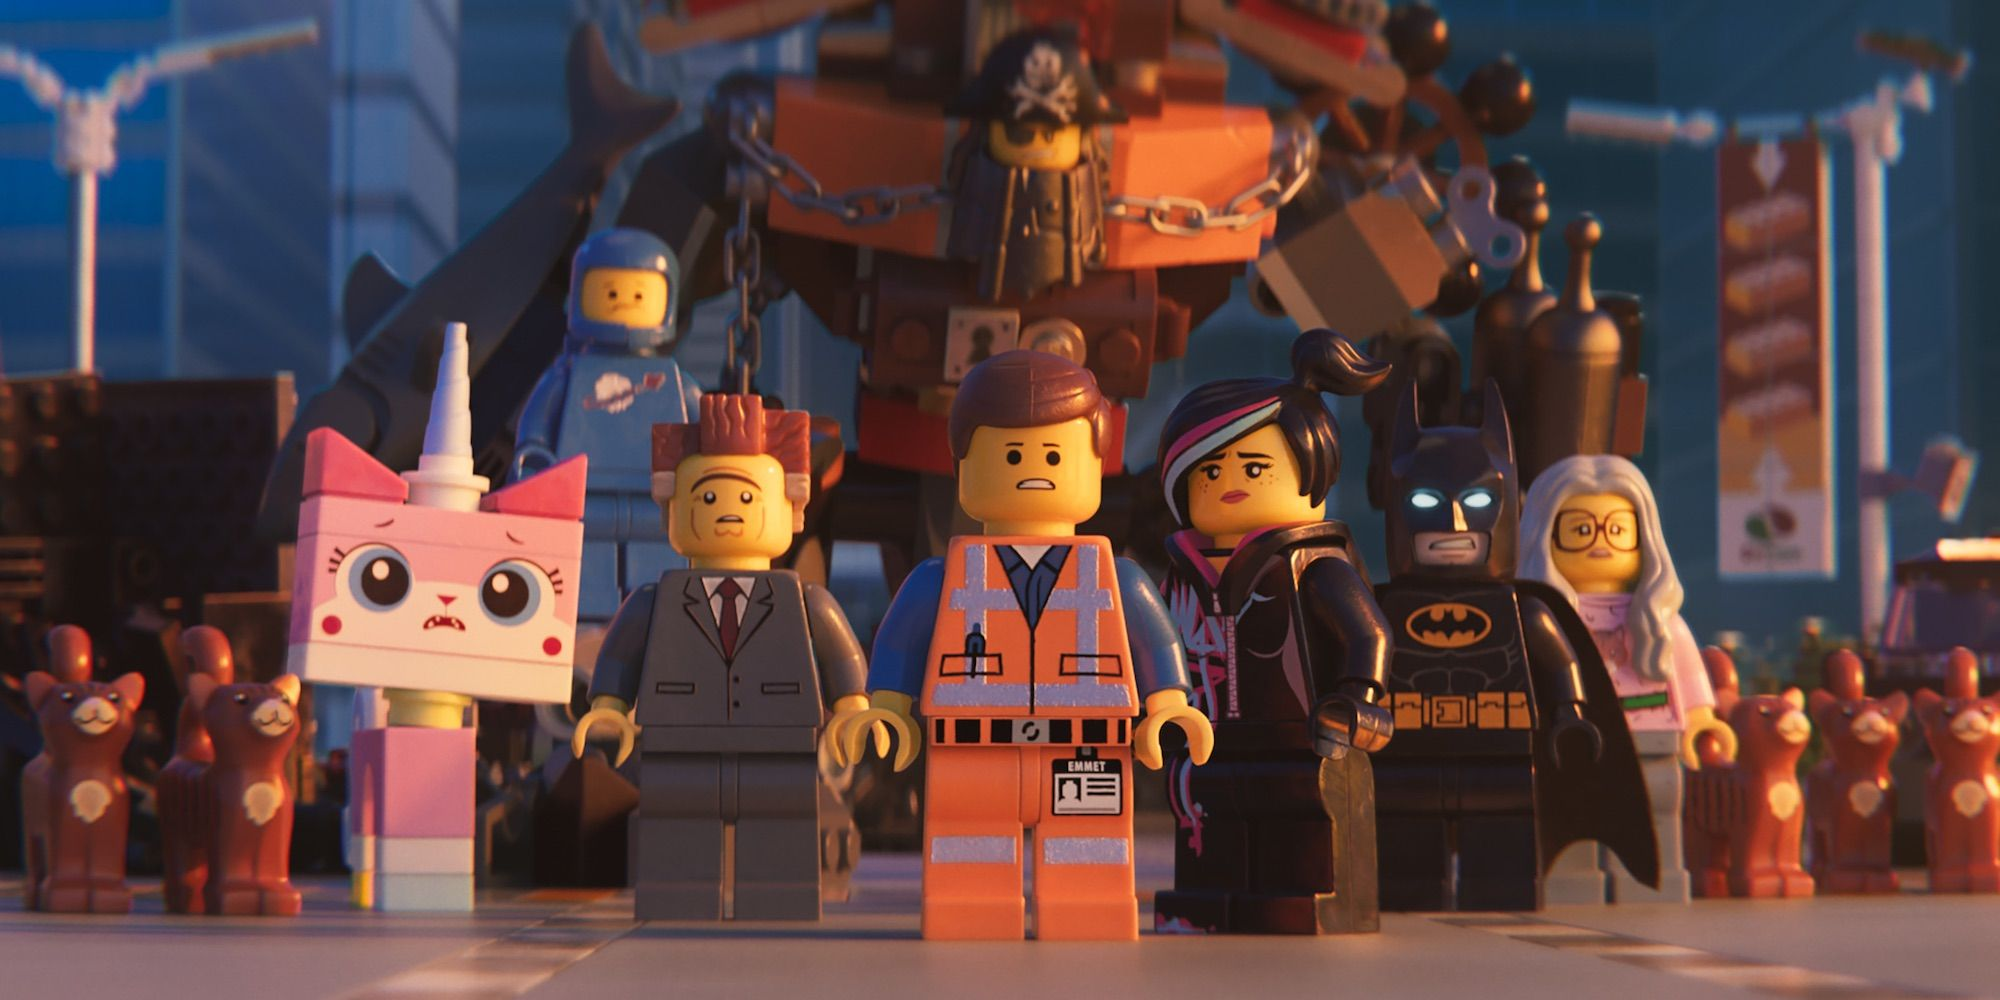 The LEGO Movie 2: The Second Part Review - This Sequel Is Awesome